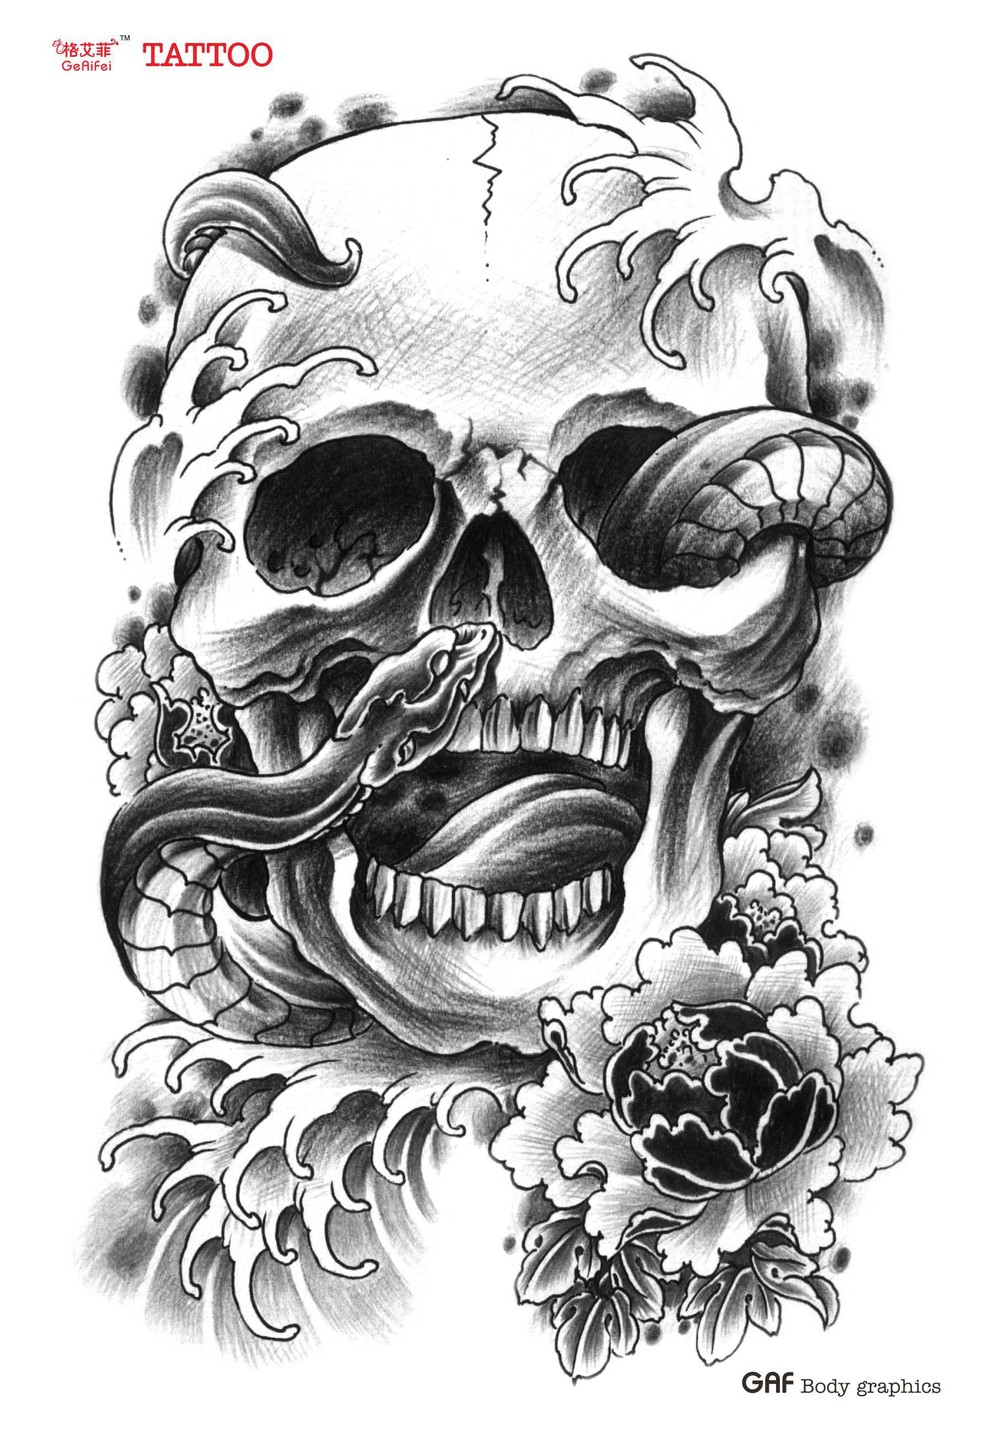 Large Temporary Tattoo Stickers Waterproof High Quality Men Arm Cool Sexy Products Lotus Snake Skull Designs Transfer In Tattoos From